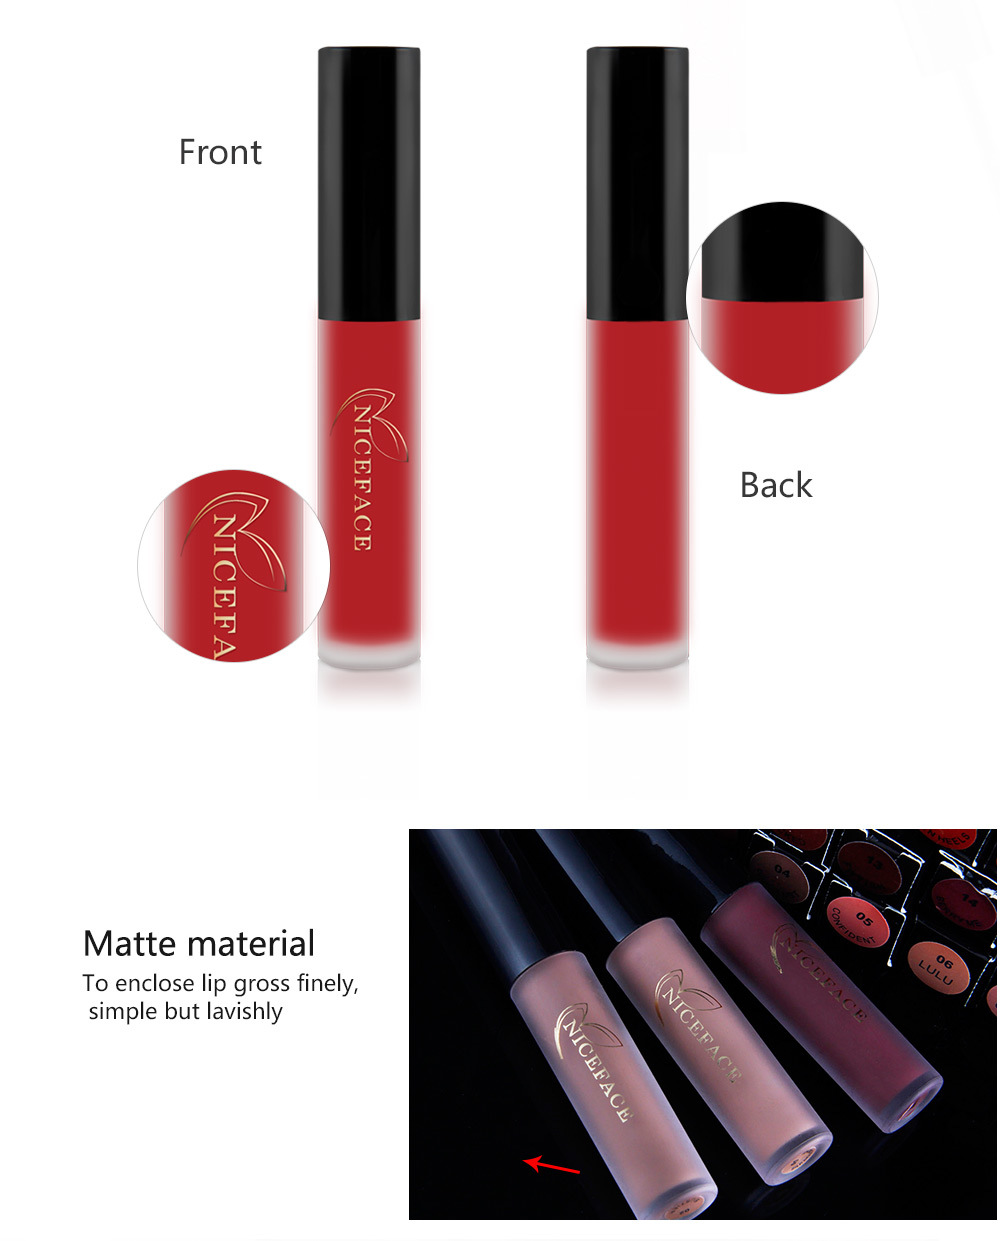 15 Colors Lips Maquiagem Matte Lipstick Kit Matt Lip Gloss Lip Balm Beauty Cosmetics Makeup Lipgloss Make up Liquid Batom matte in Lipstick from Beauty Health